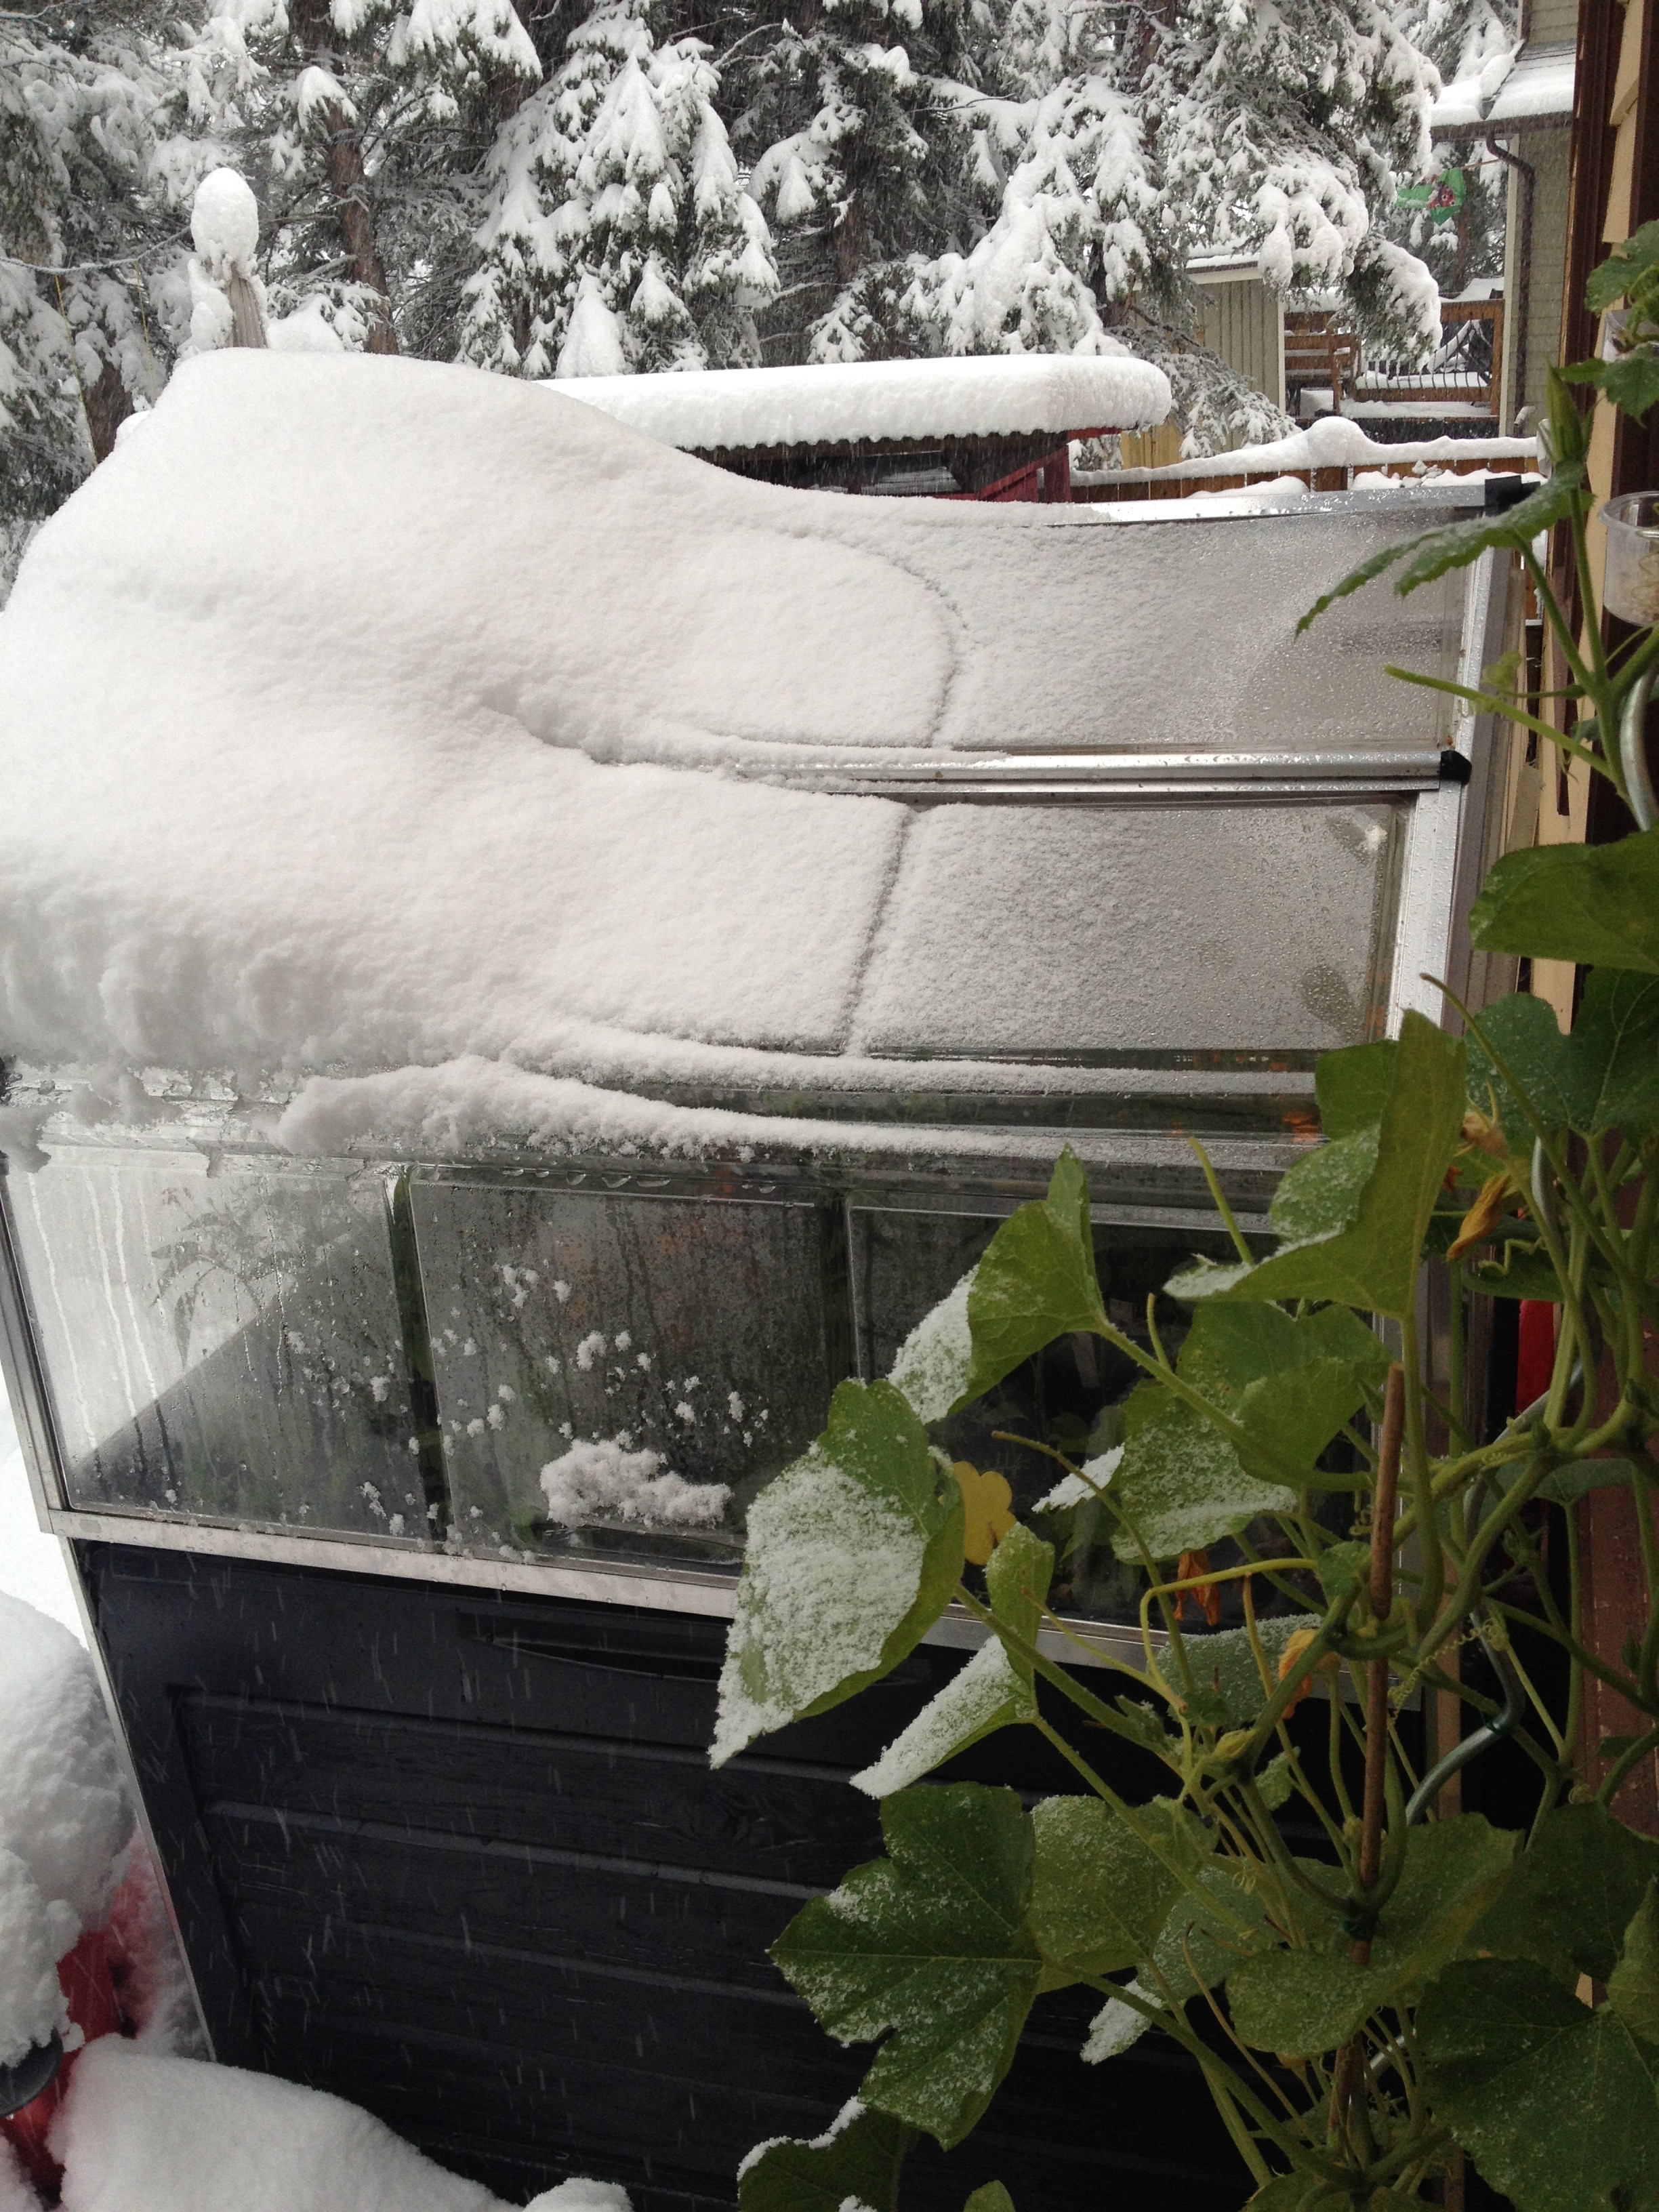 The perils of gardening in this climate. The season ends dramatically!